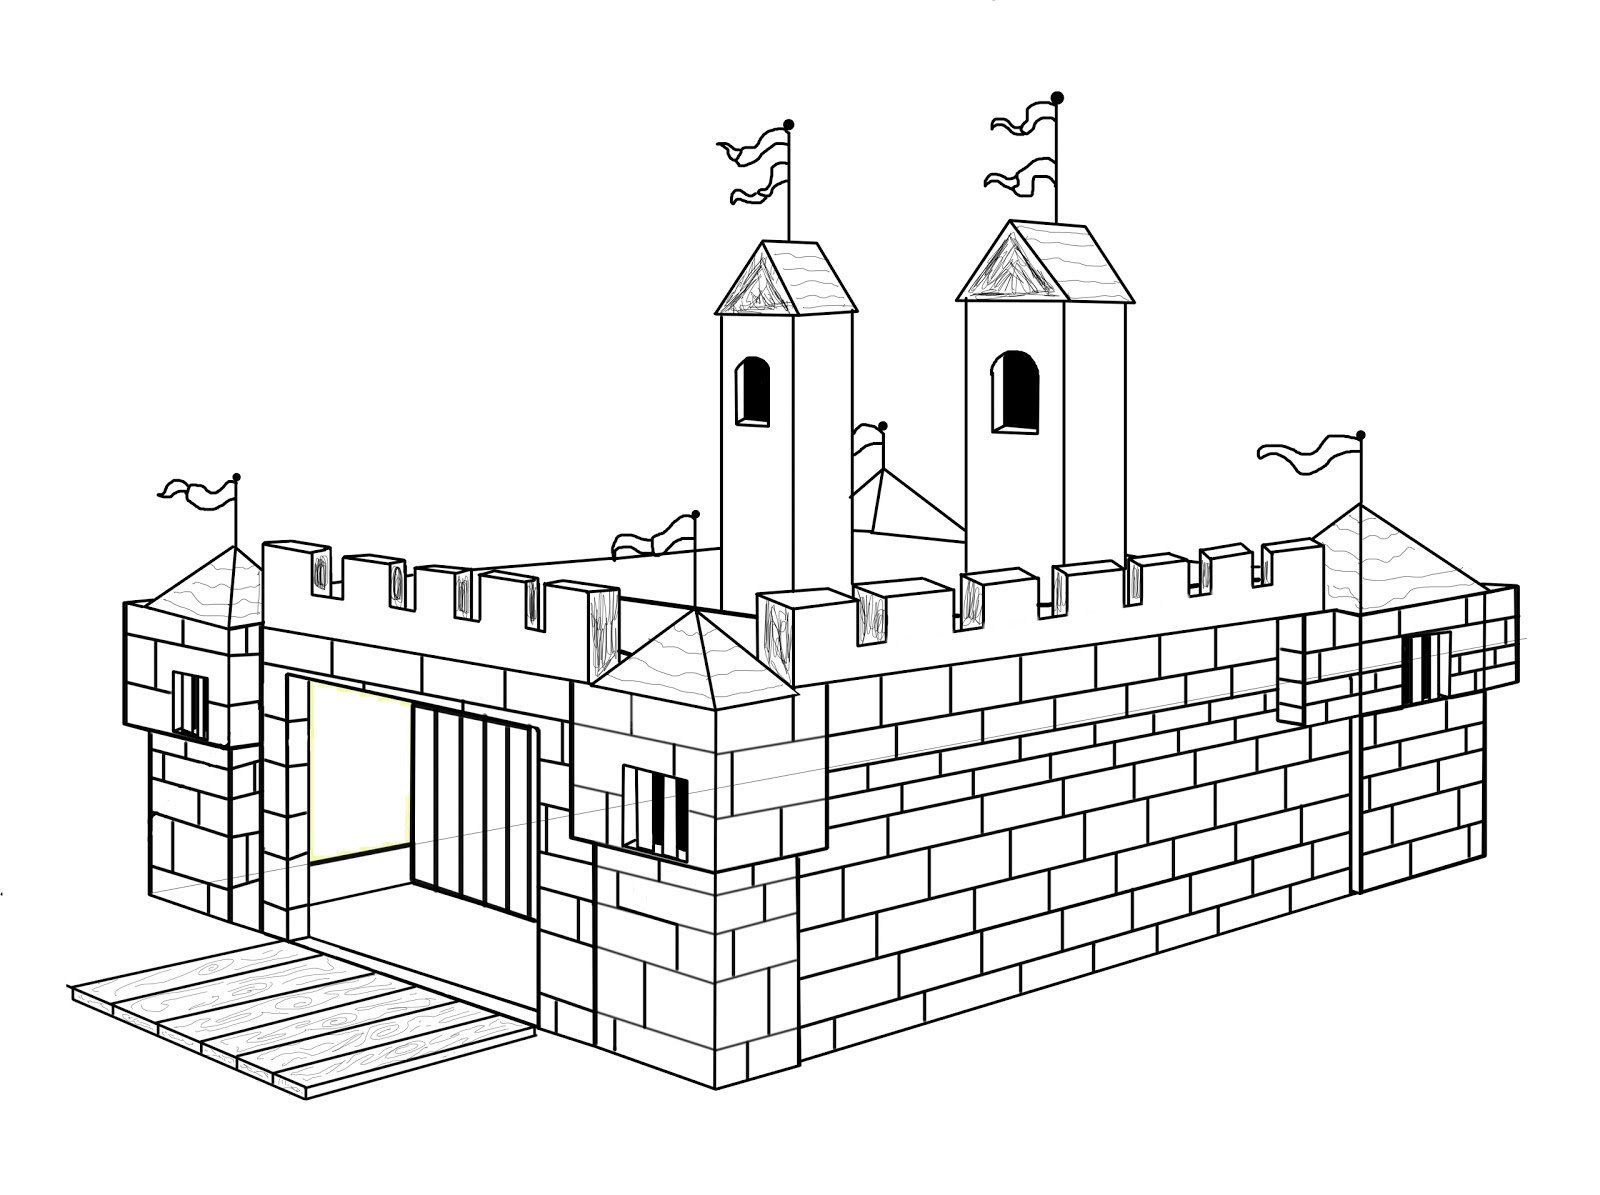 Coloriage Chateau Fort Cp.Telecharger Coloriage De Chateau Fort A Imprimer Coloriage A